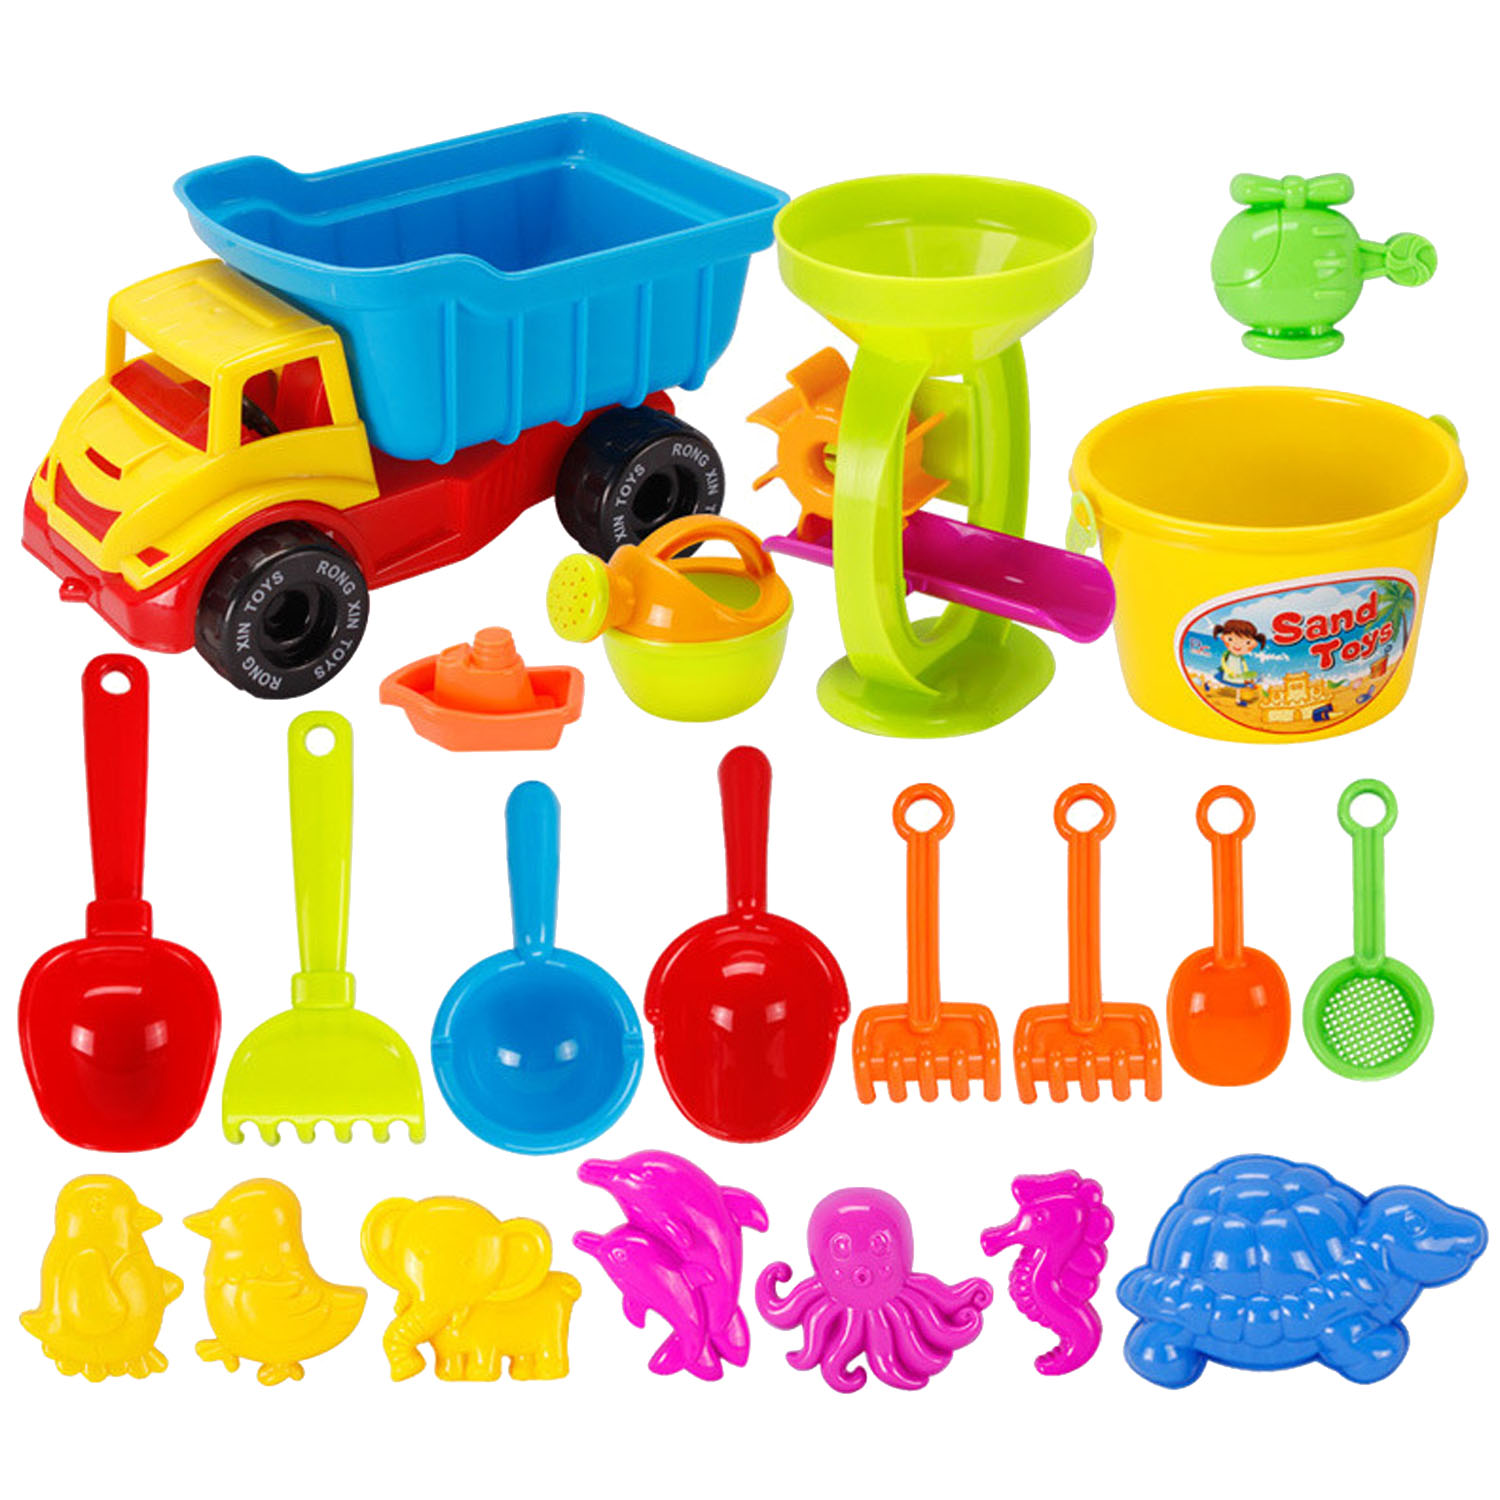 21PCS Funny Kids Beach Sand Game Toy Set Including Shovels Rakes Truck Hourglass Pretend Playset Toy Kit Children Sand Beach Toy